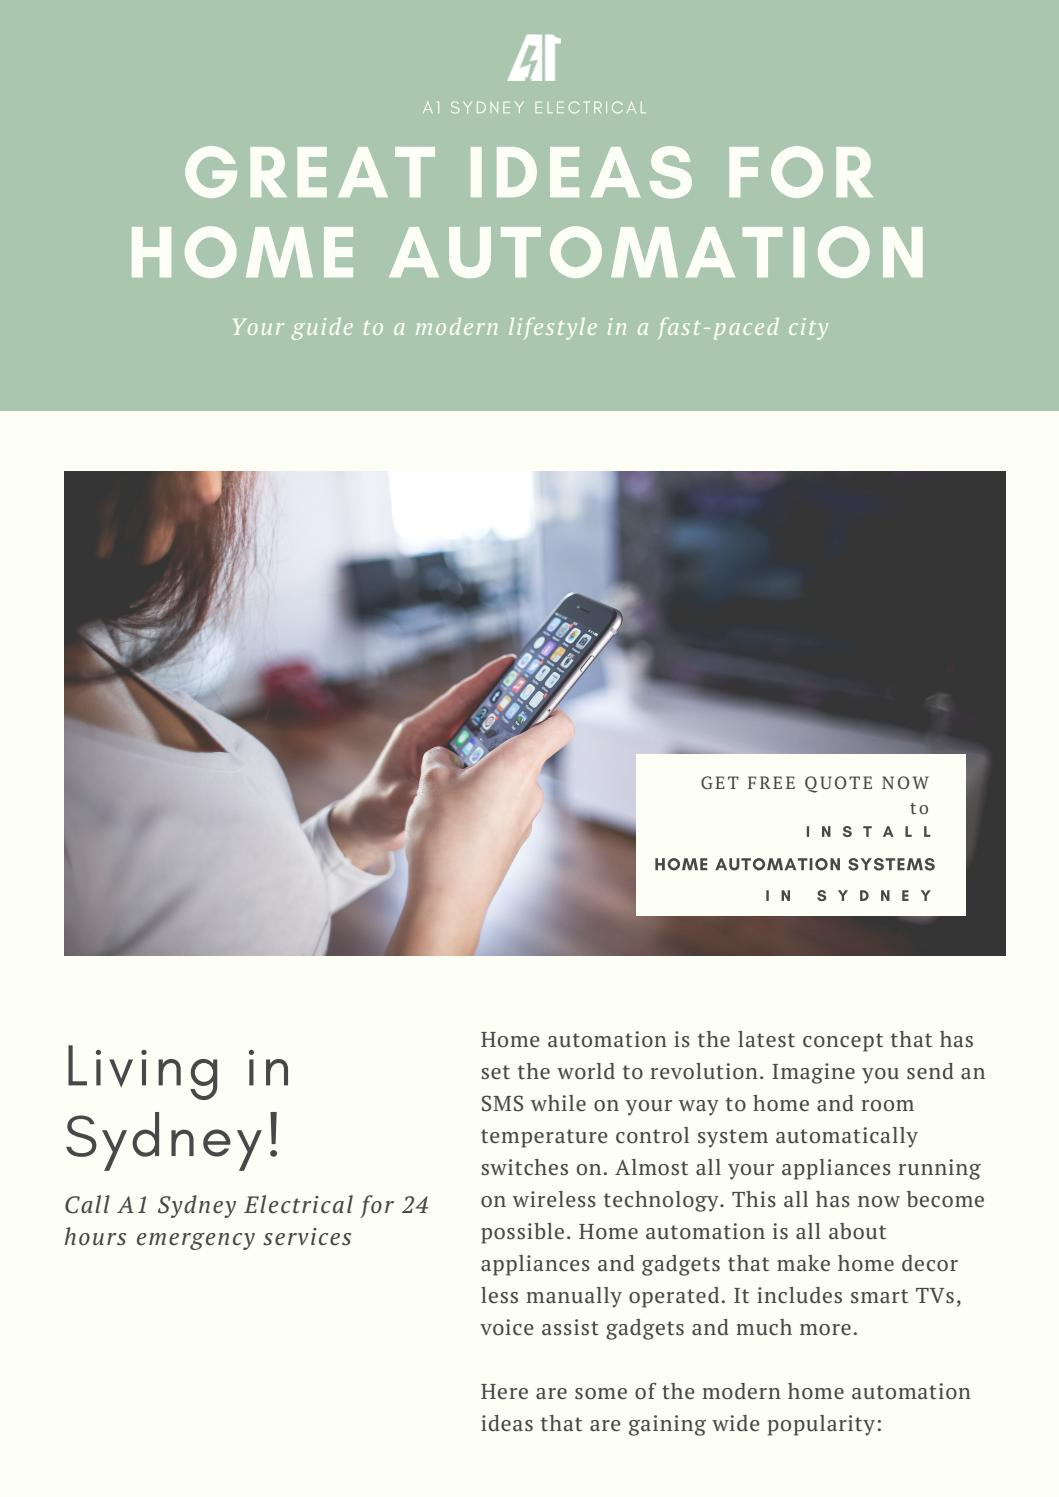 Home Automation A1 Sydney Electrical by a1sydneyelectrical - issuu